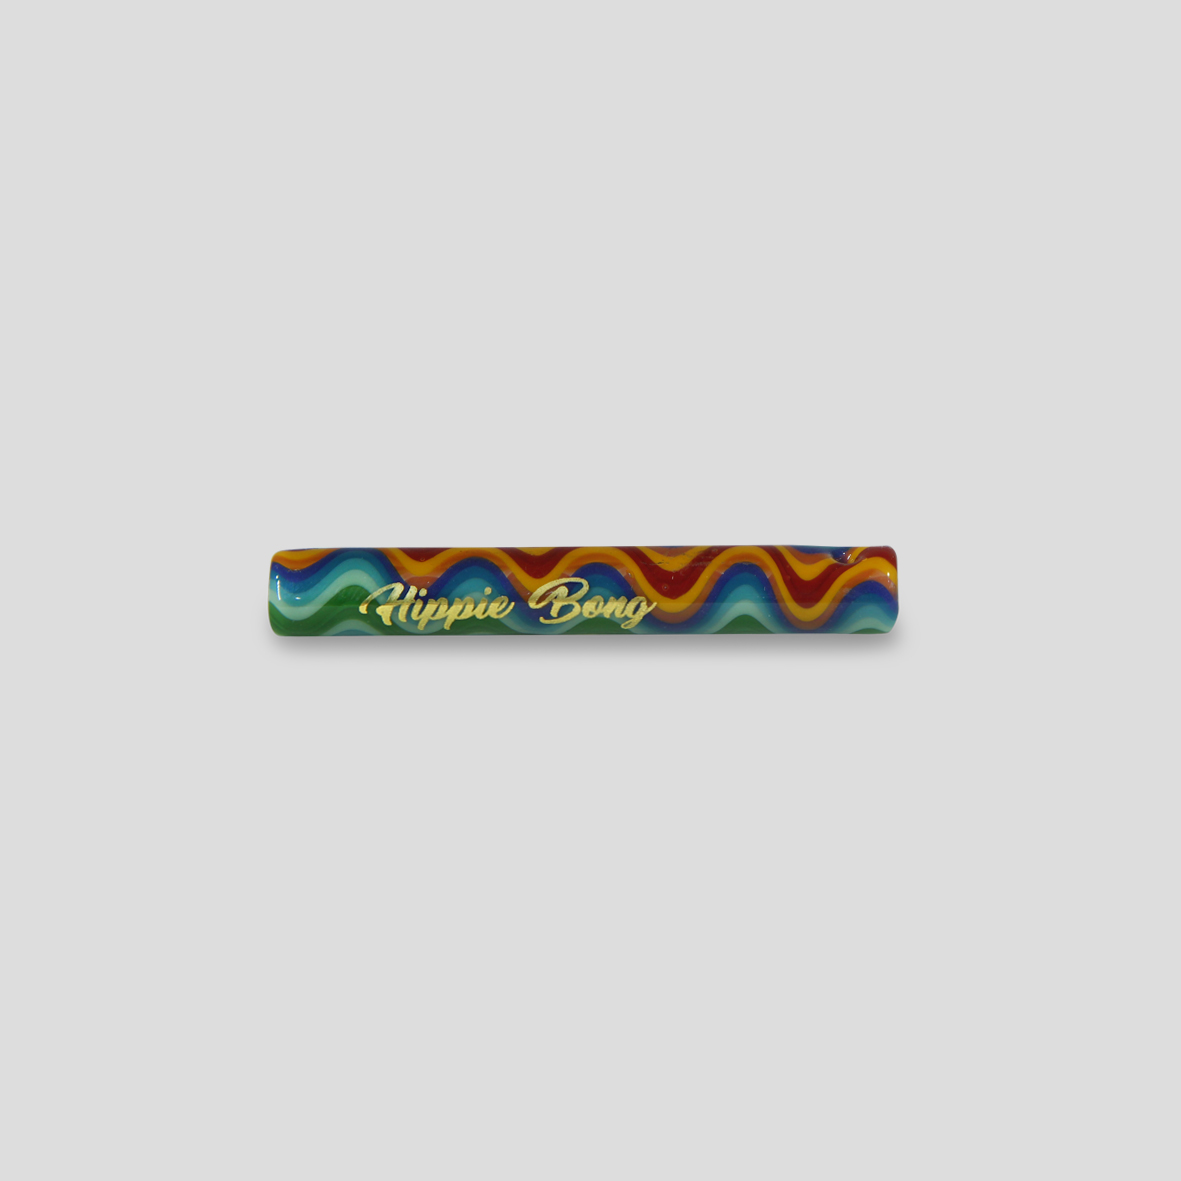 Piteira de Vidro Wig-wag Tropical Waves 2